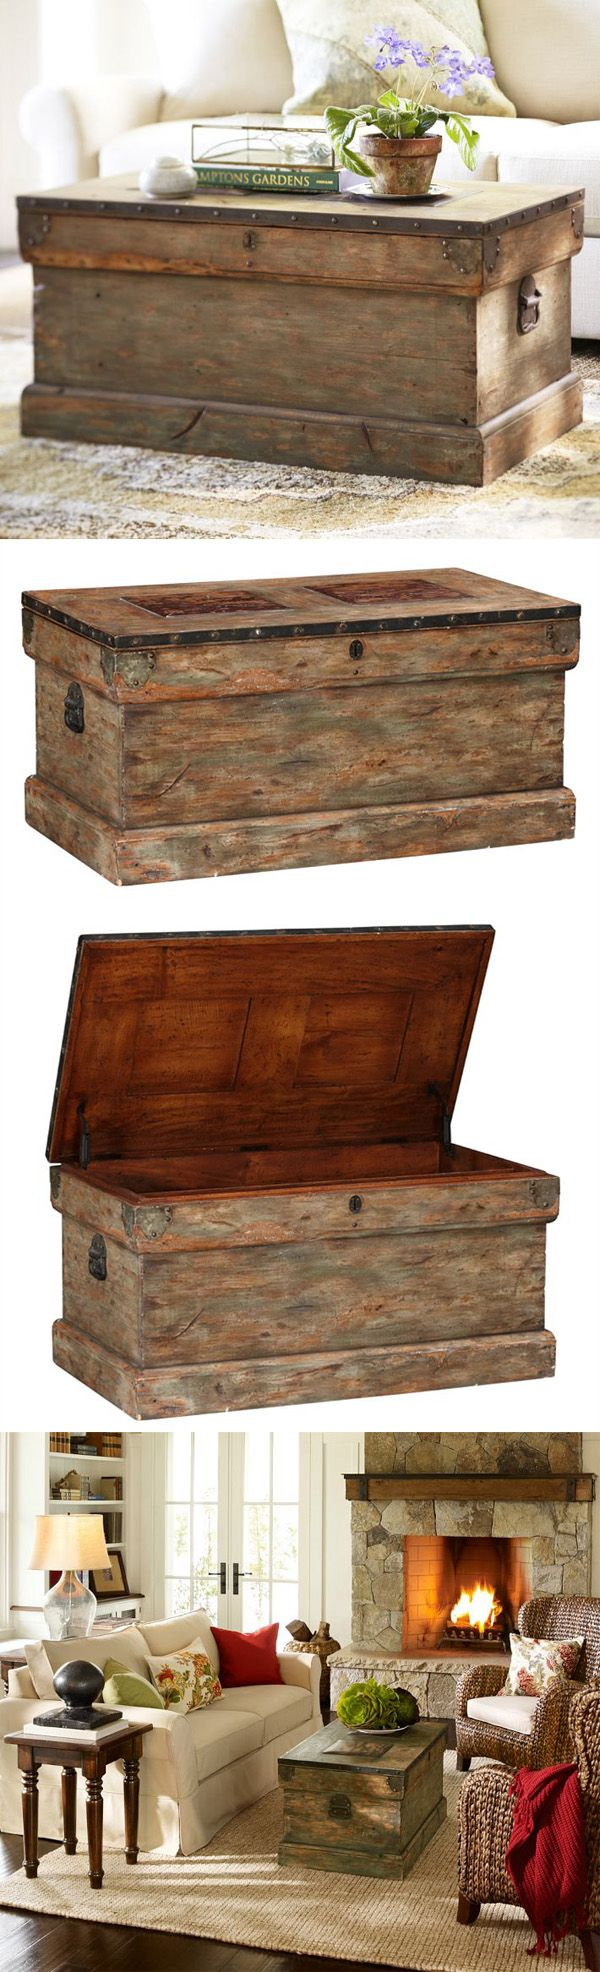 Best 25 trunk coffee tables ideas on pinterest coffee table rebecca trunk 499 pottery barn 38w 225 trunk coffee tablescoffe geotapseo Image collections